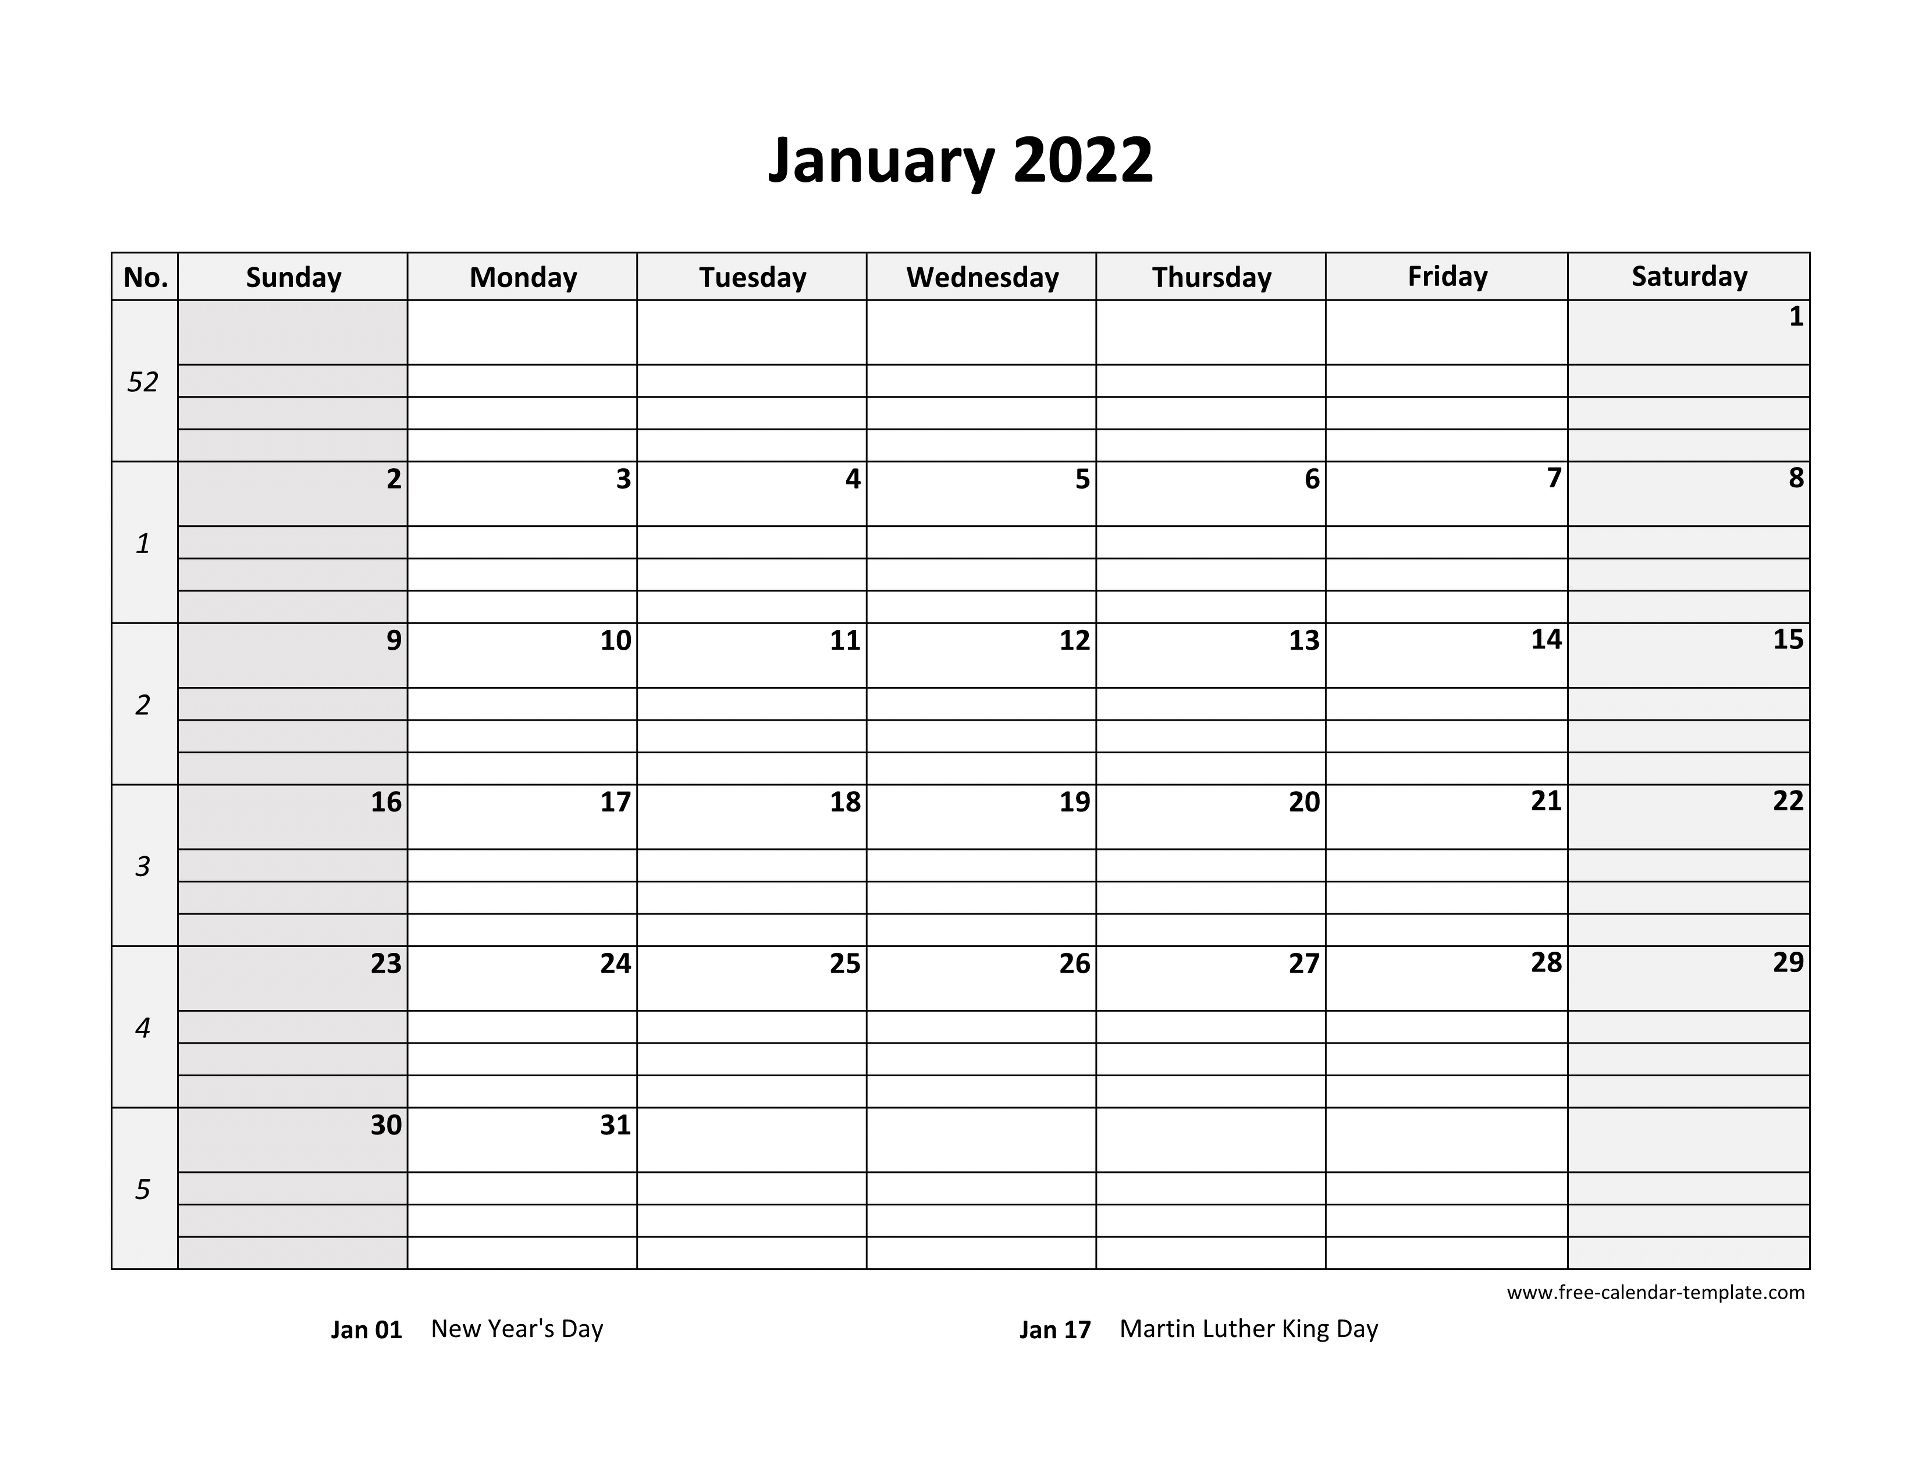 January 2022 Calendar Free Printable with grid lines ...